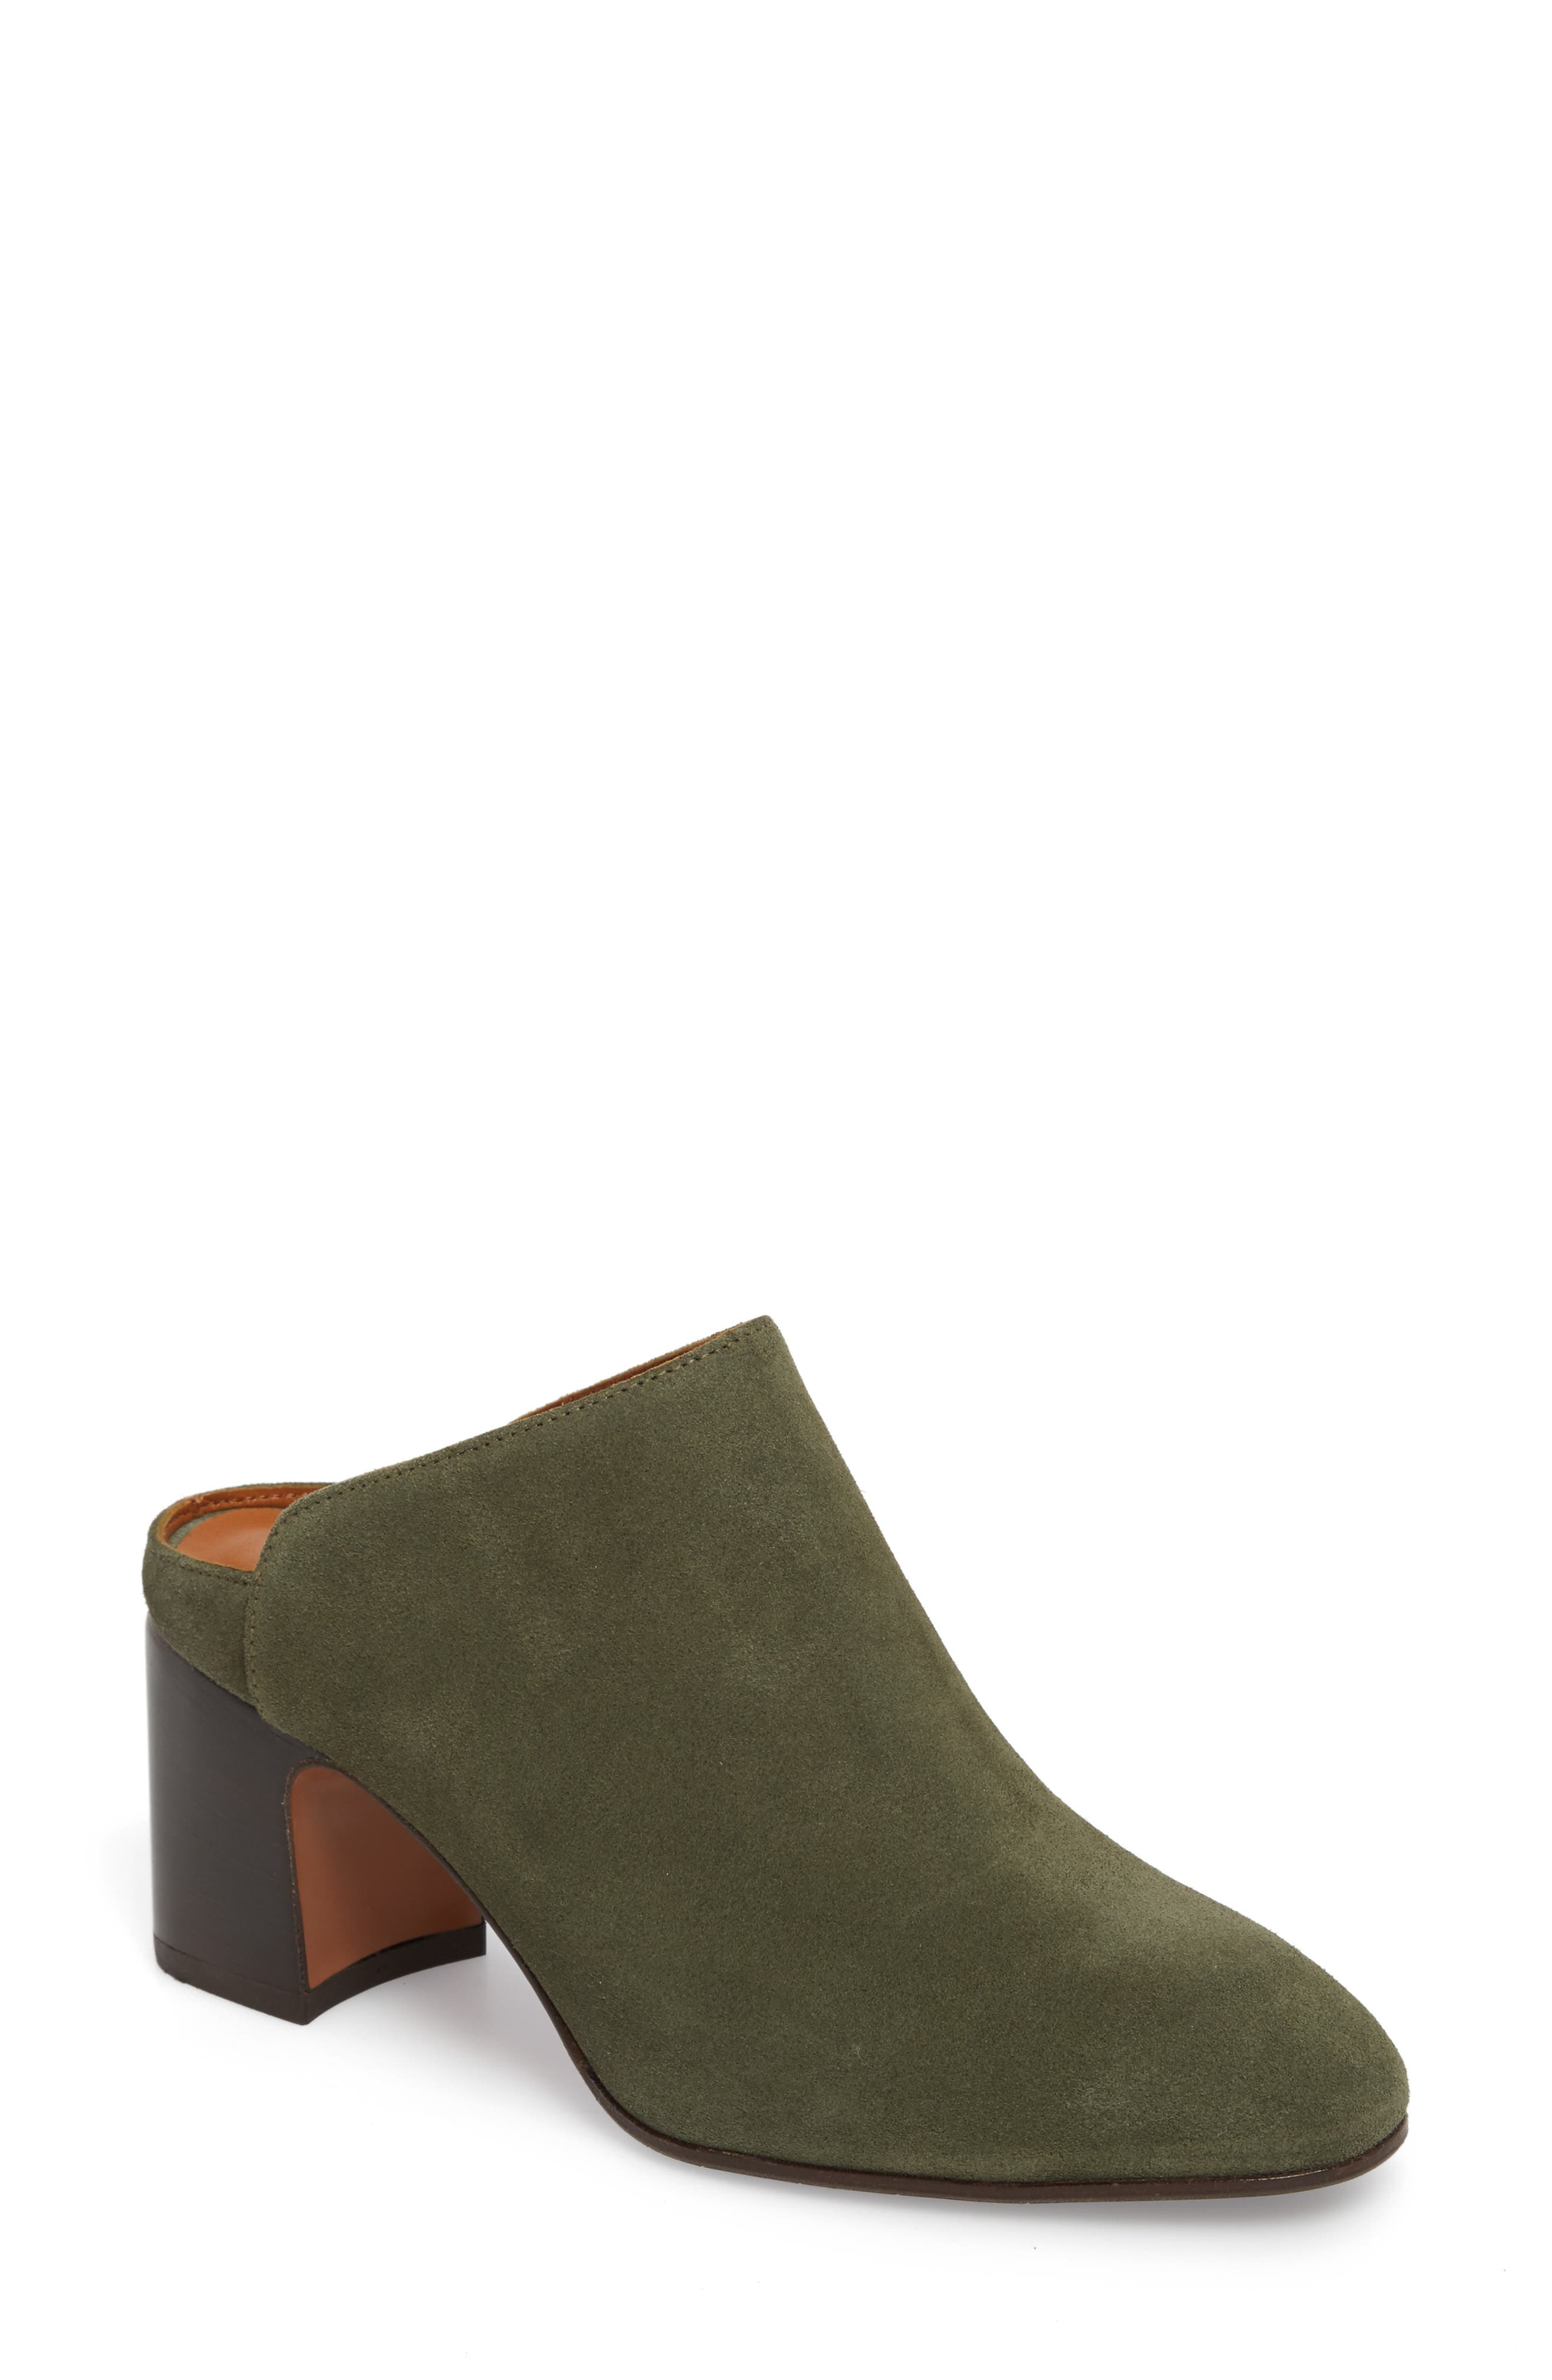 Womens Boots aquatalia brown suede damon rusty dress nv0d34z9